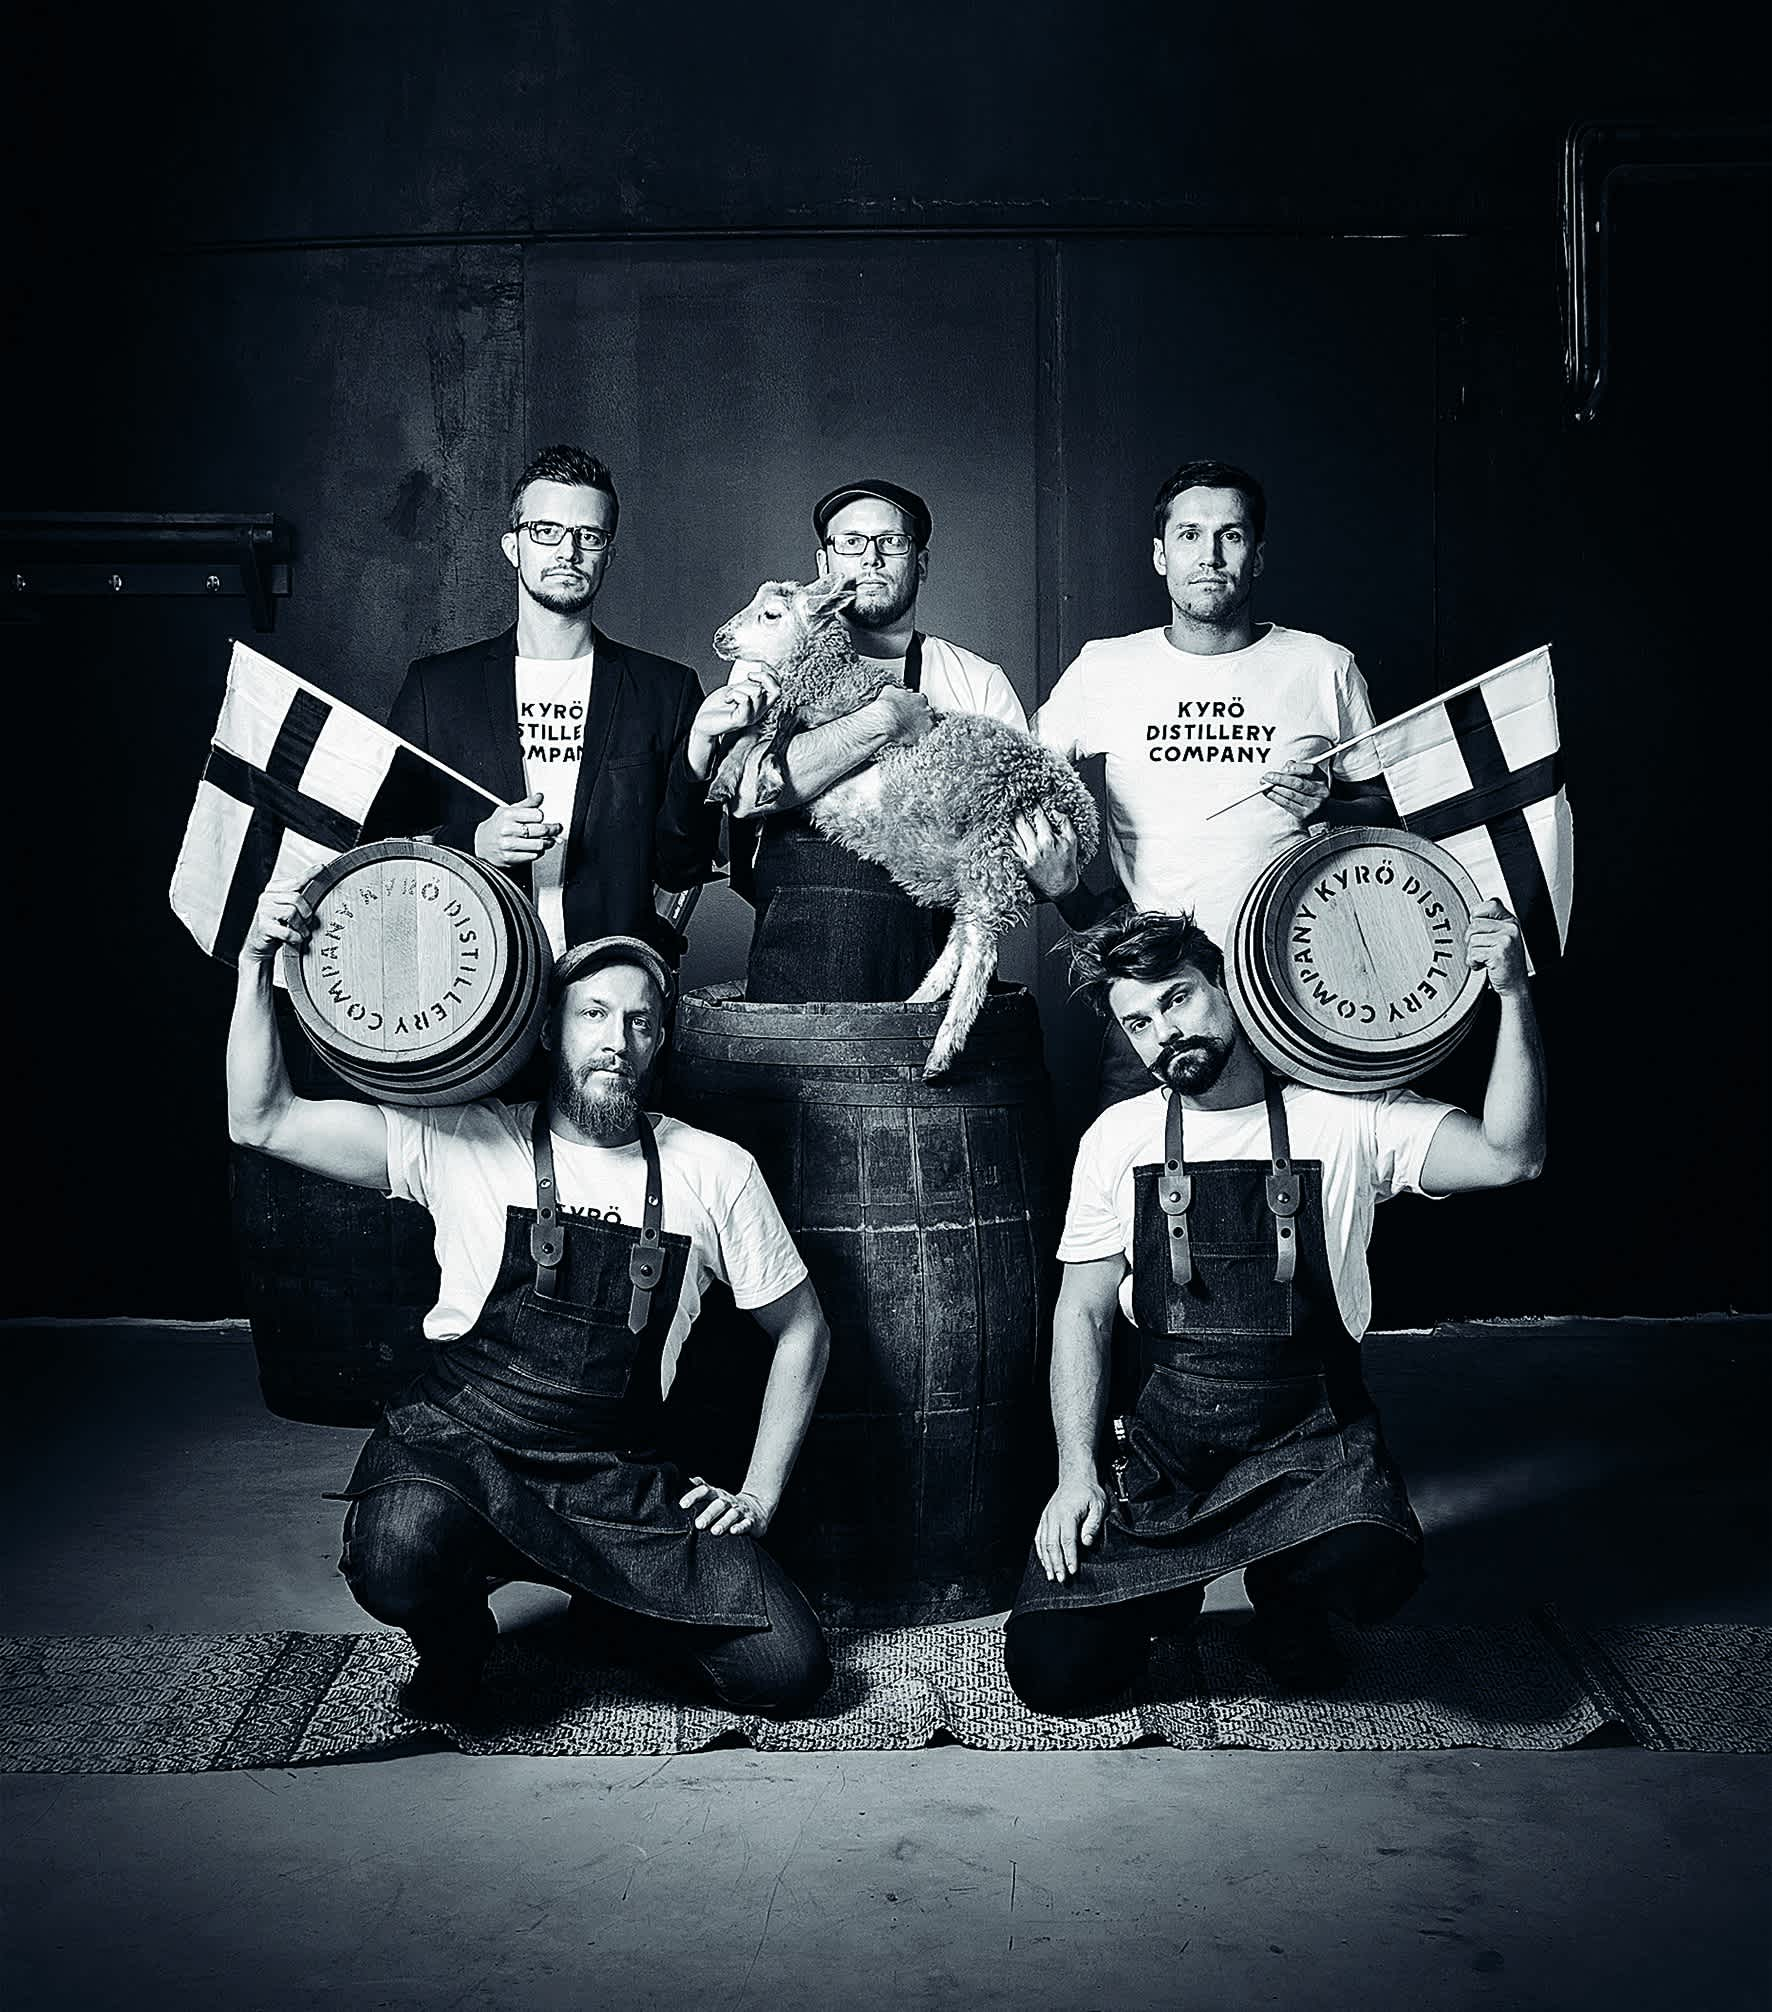 Black and white image: the five founders of the Kyrö Distillery Company in a group picture, two holding barrels, two holding Finnish flags, one holding a lamb.